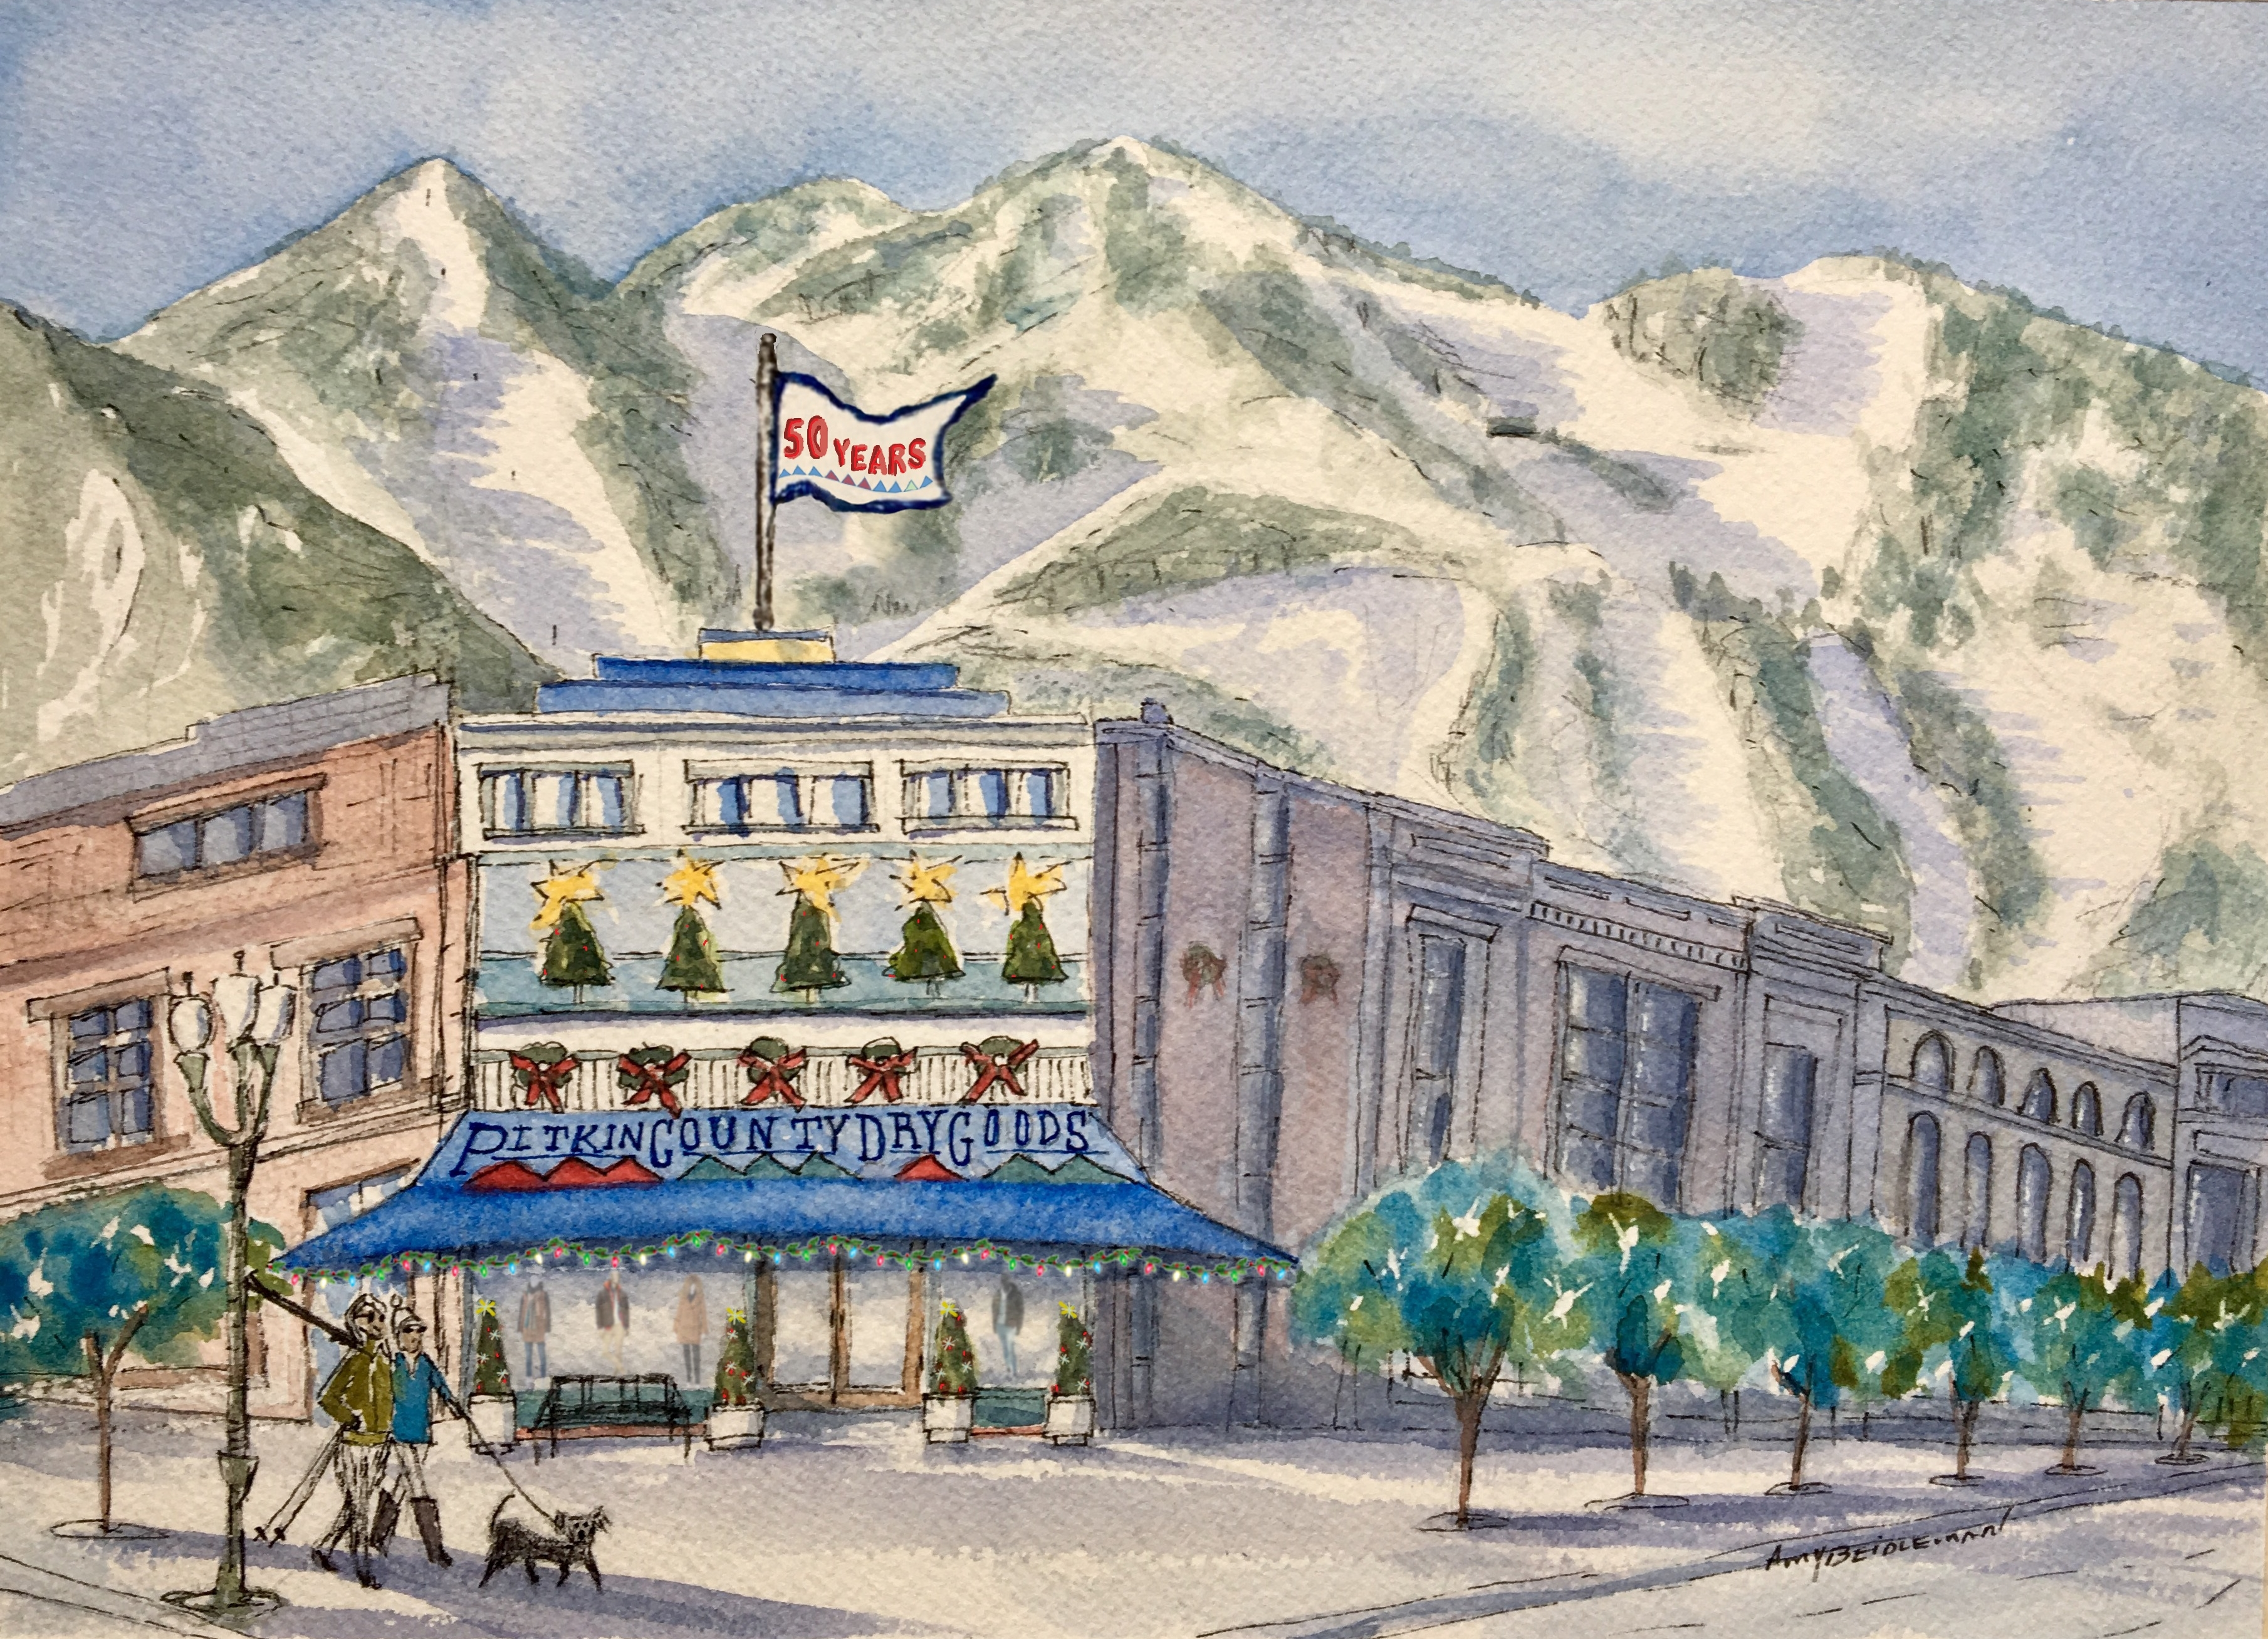 Artwork by local artist Amy Beidleman commemorating 50 years of Pitkin County Dry Goods.